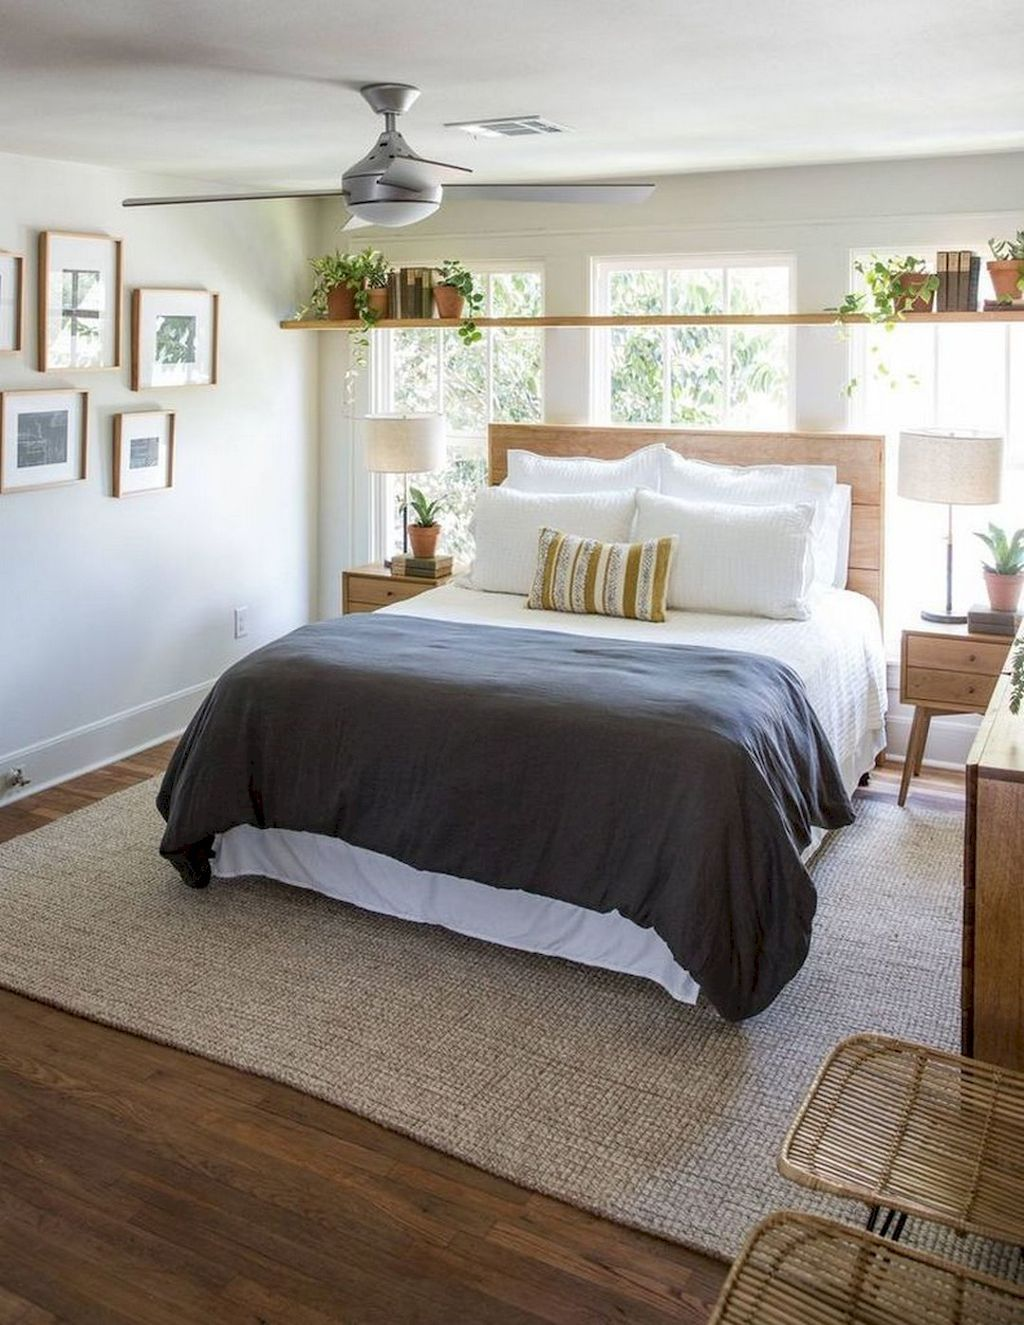 Adorable 45 Beautiful Small Master Bedroom Designs https